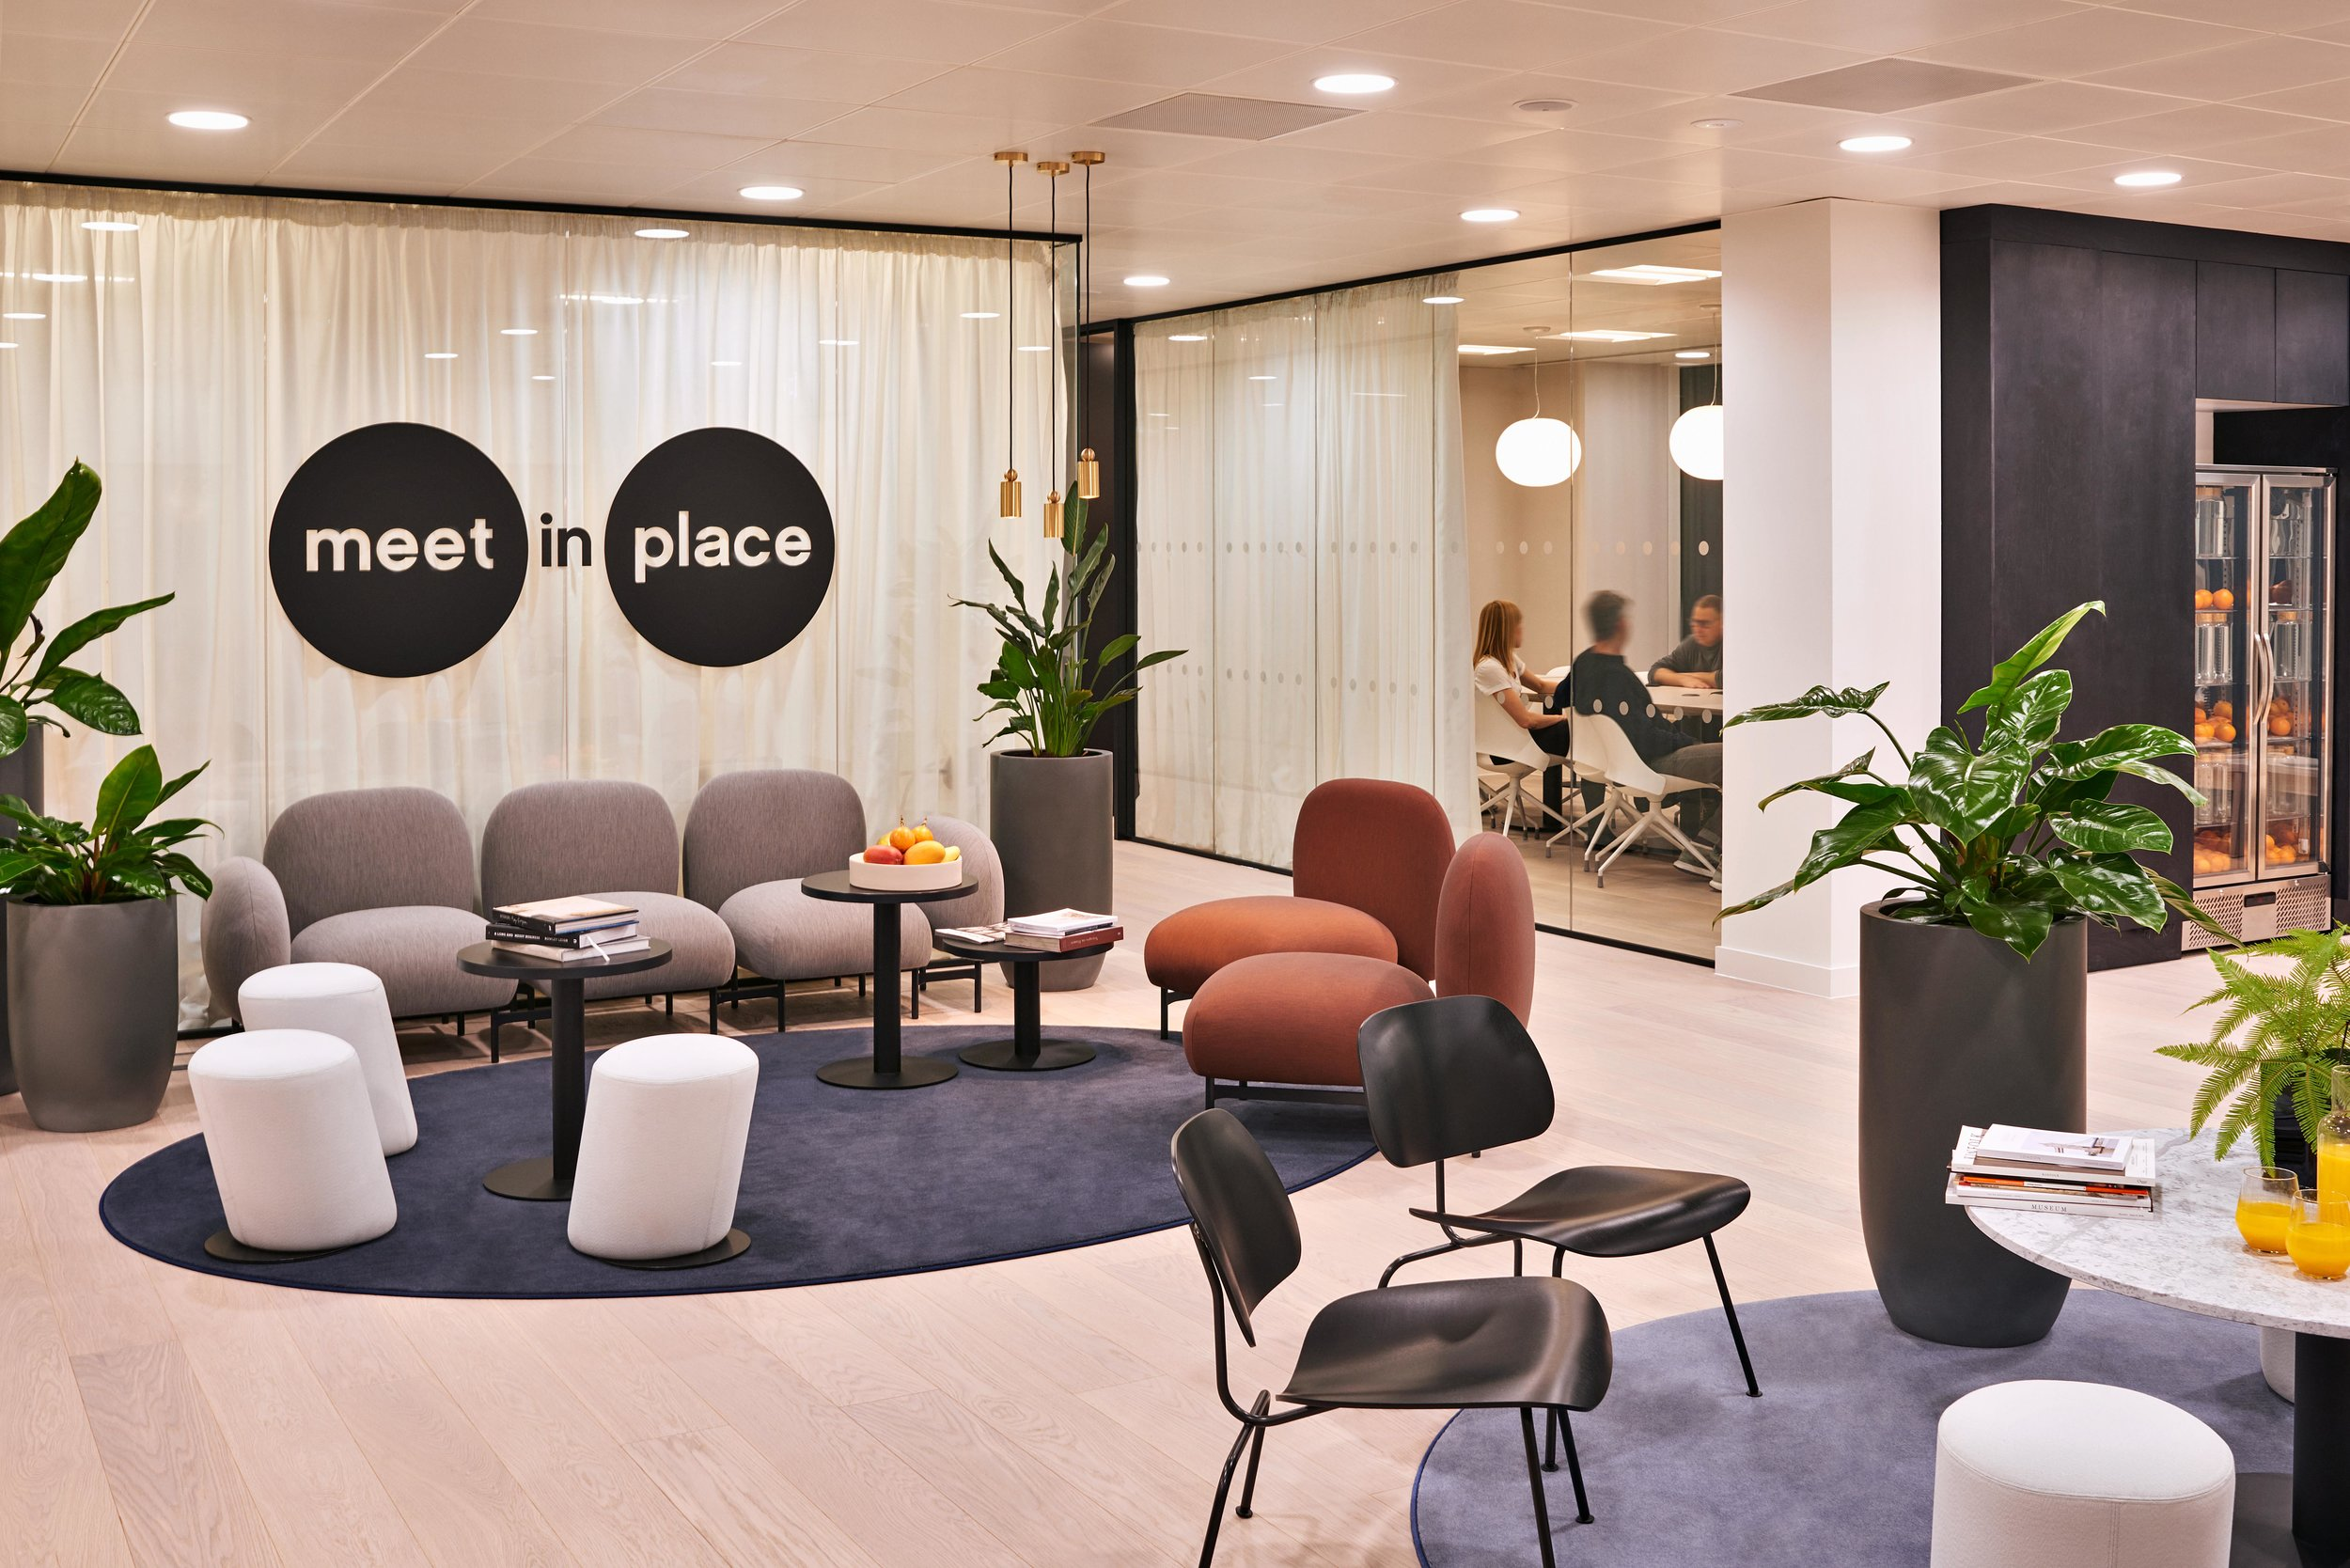 Meet in Place Reception Image Credit Tom Mannion (5).jpg